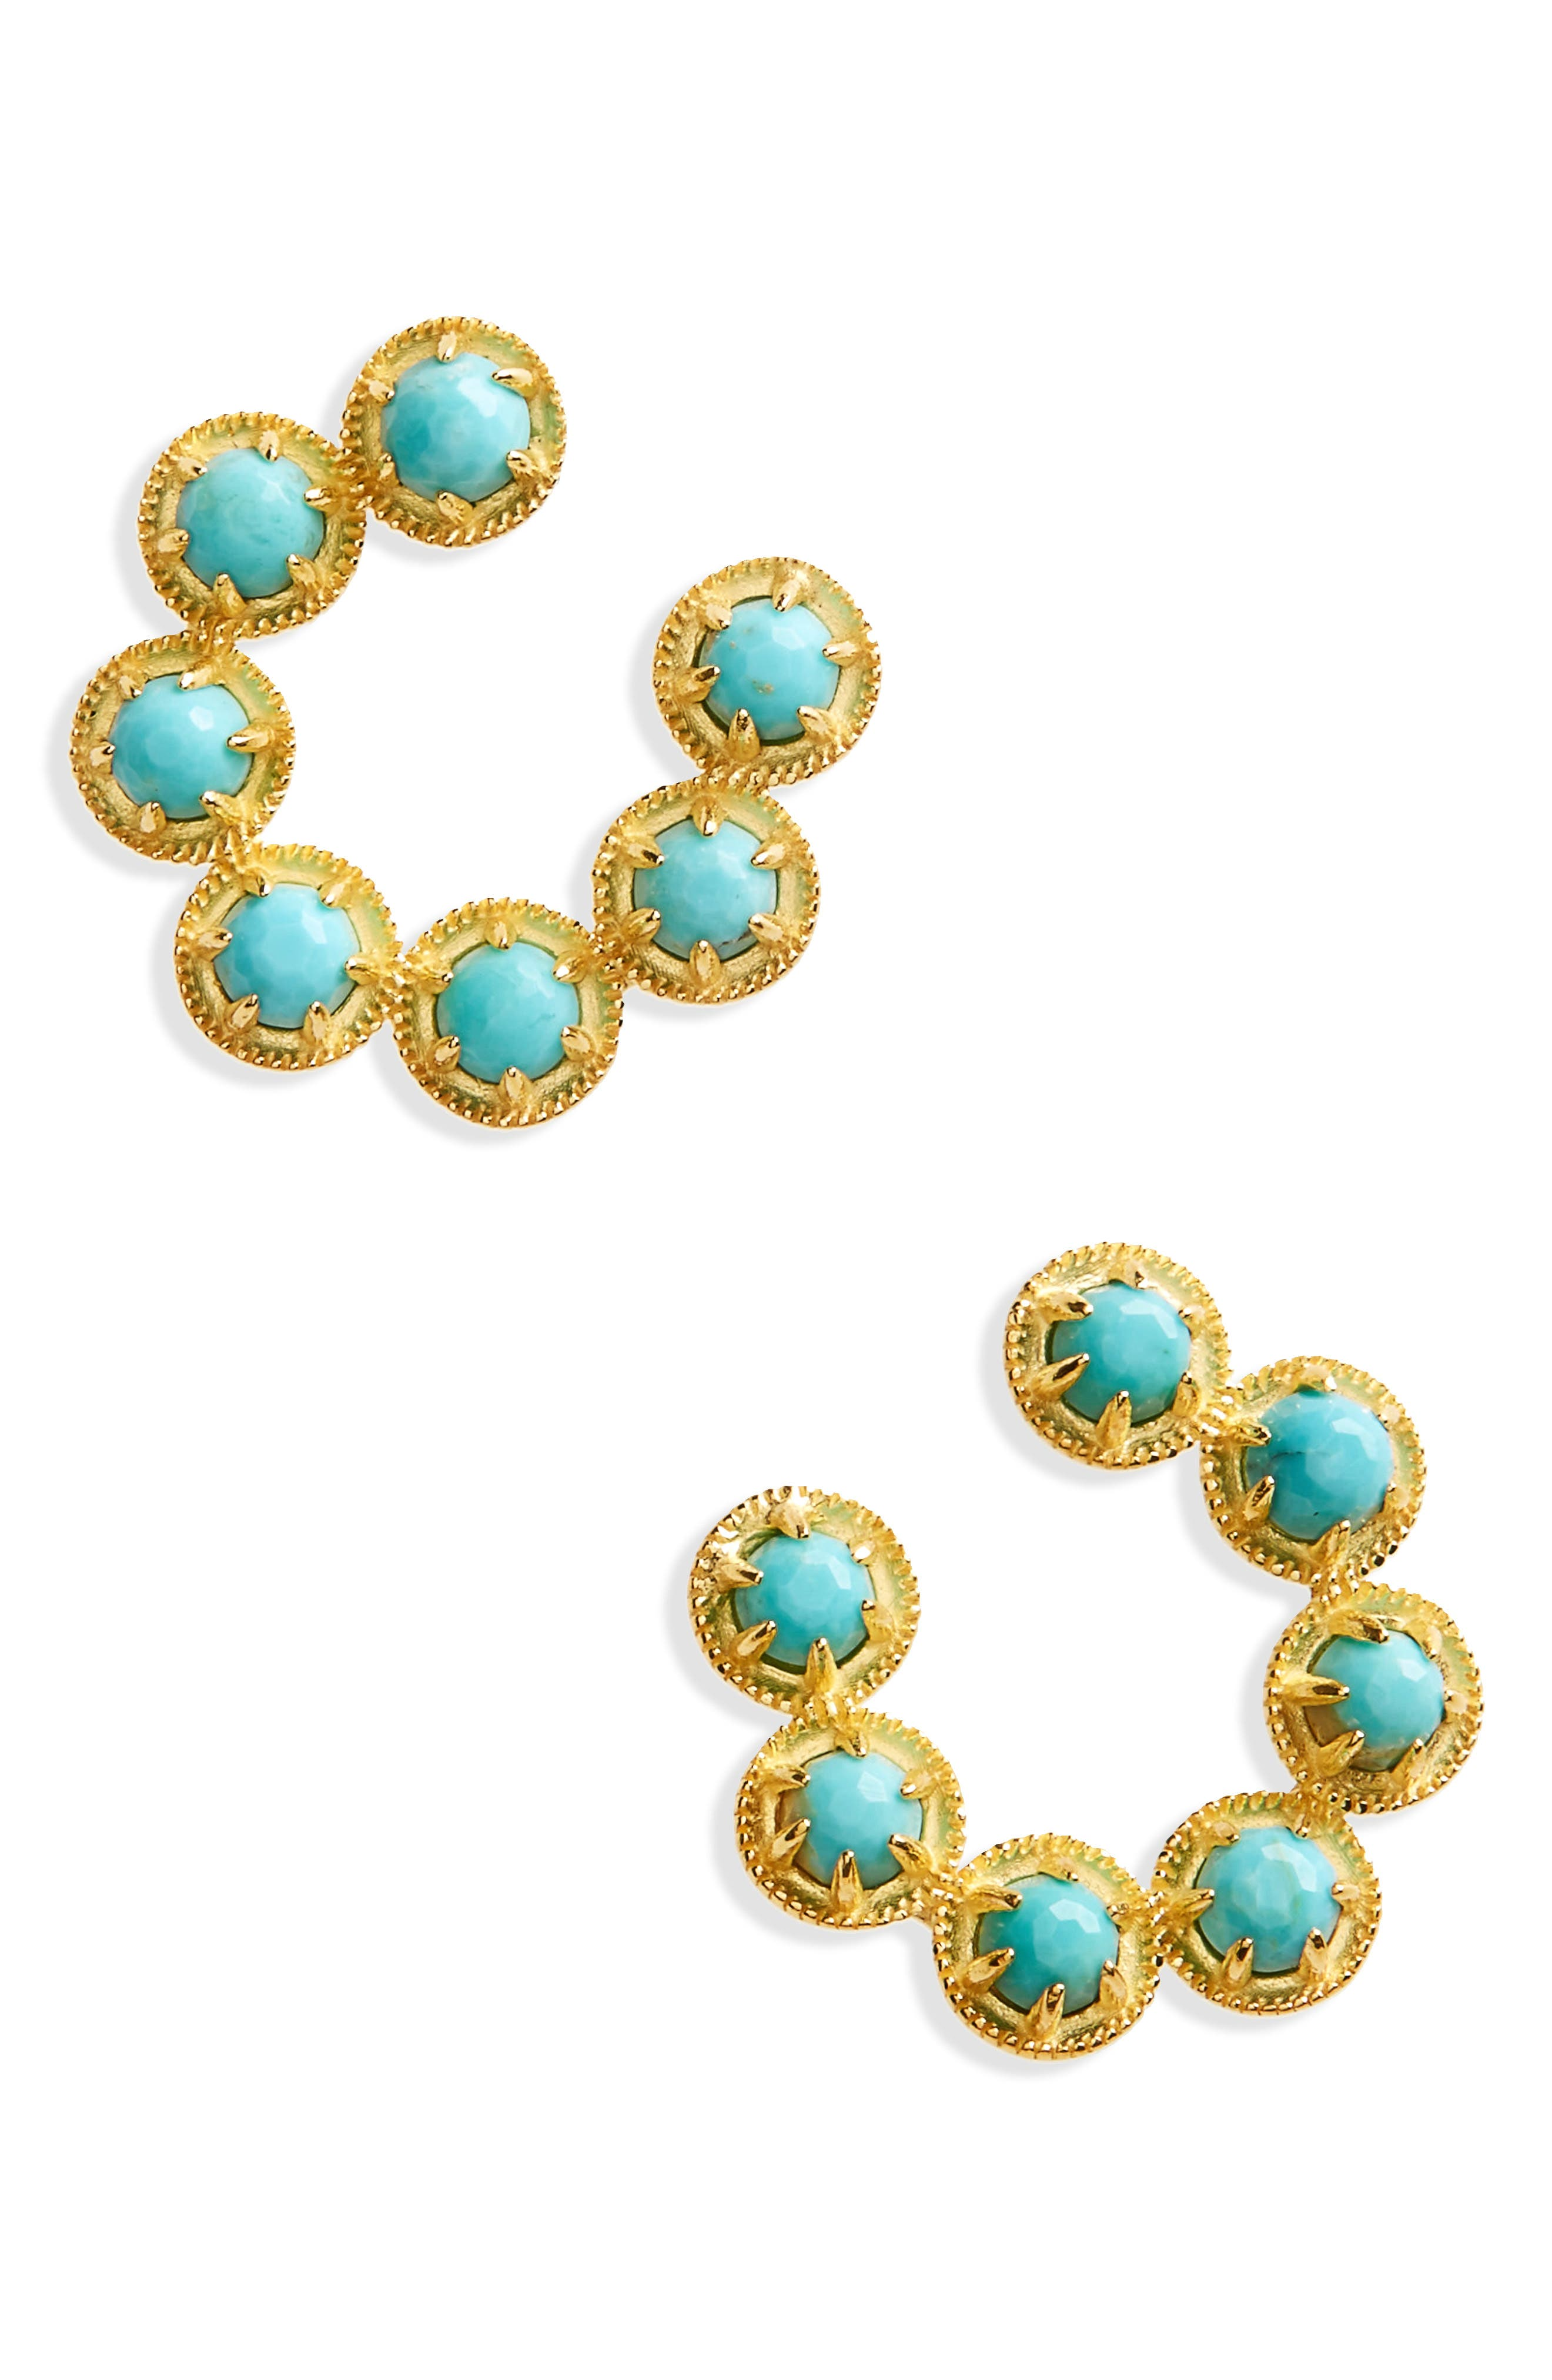 Cleo Vermeil Hoop Earrings,                             Main thumbnail 1, color,                             TURQUOISE/ GOLD